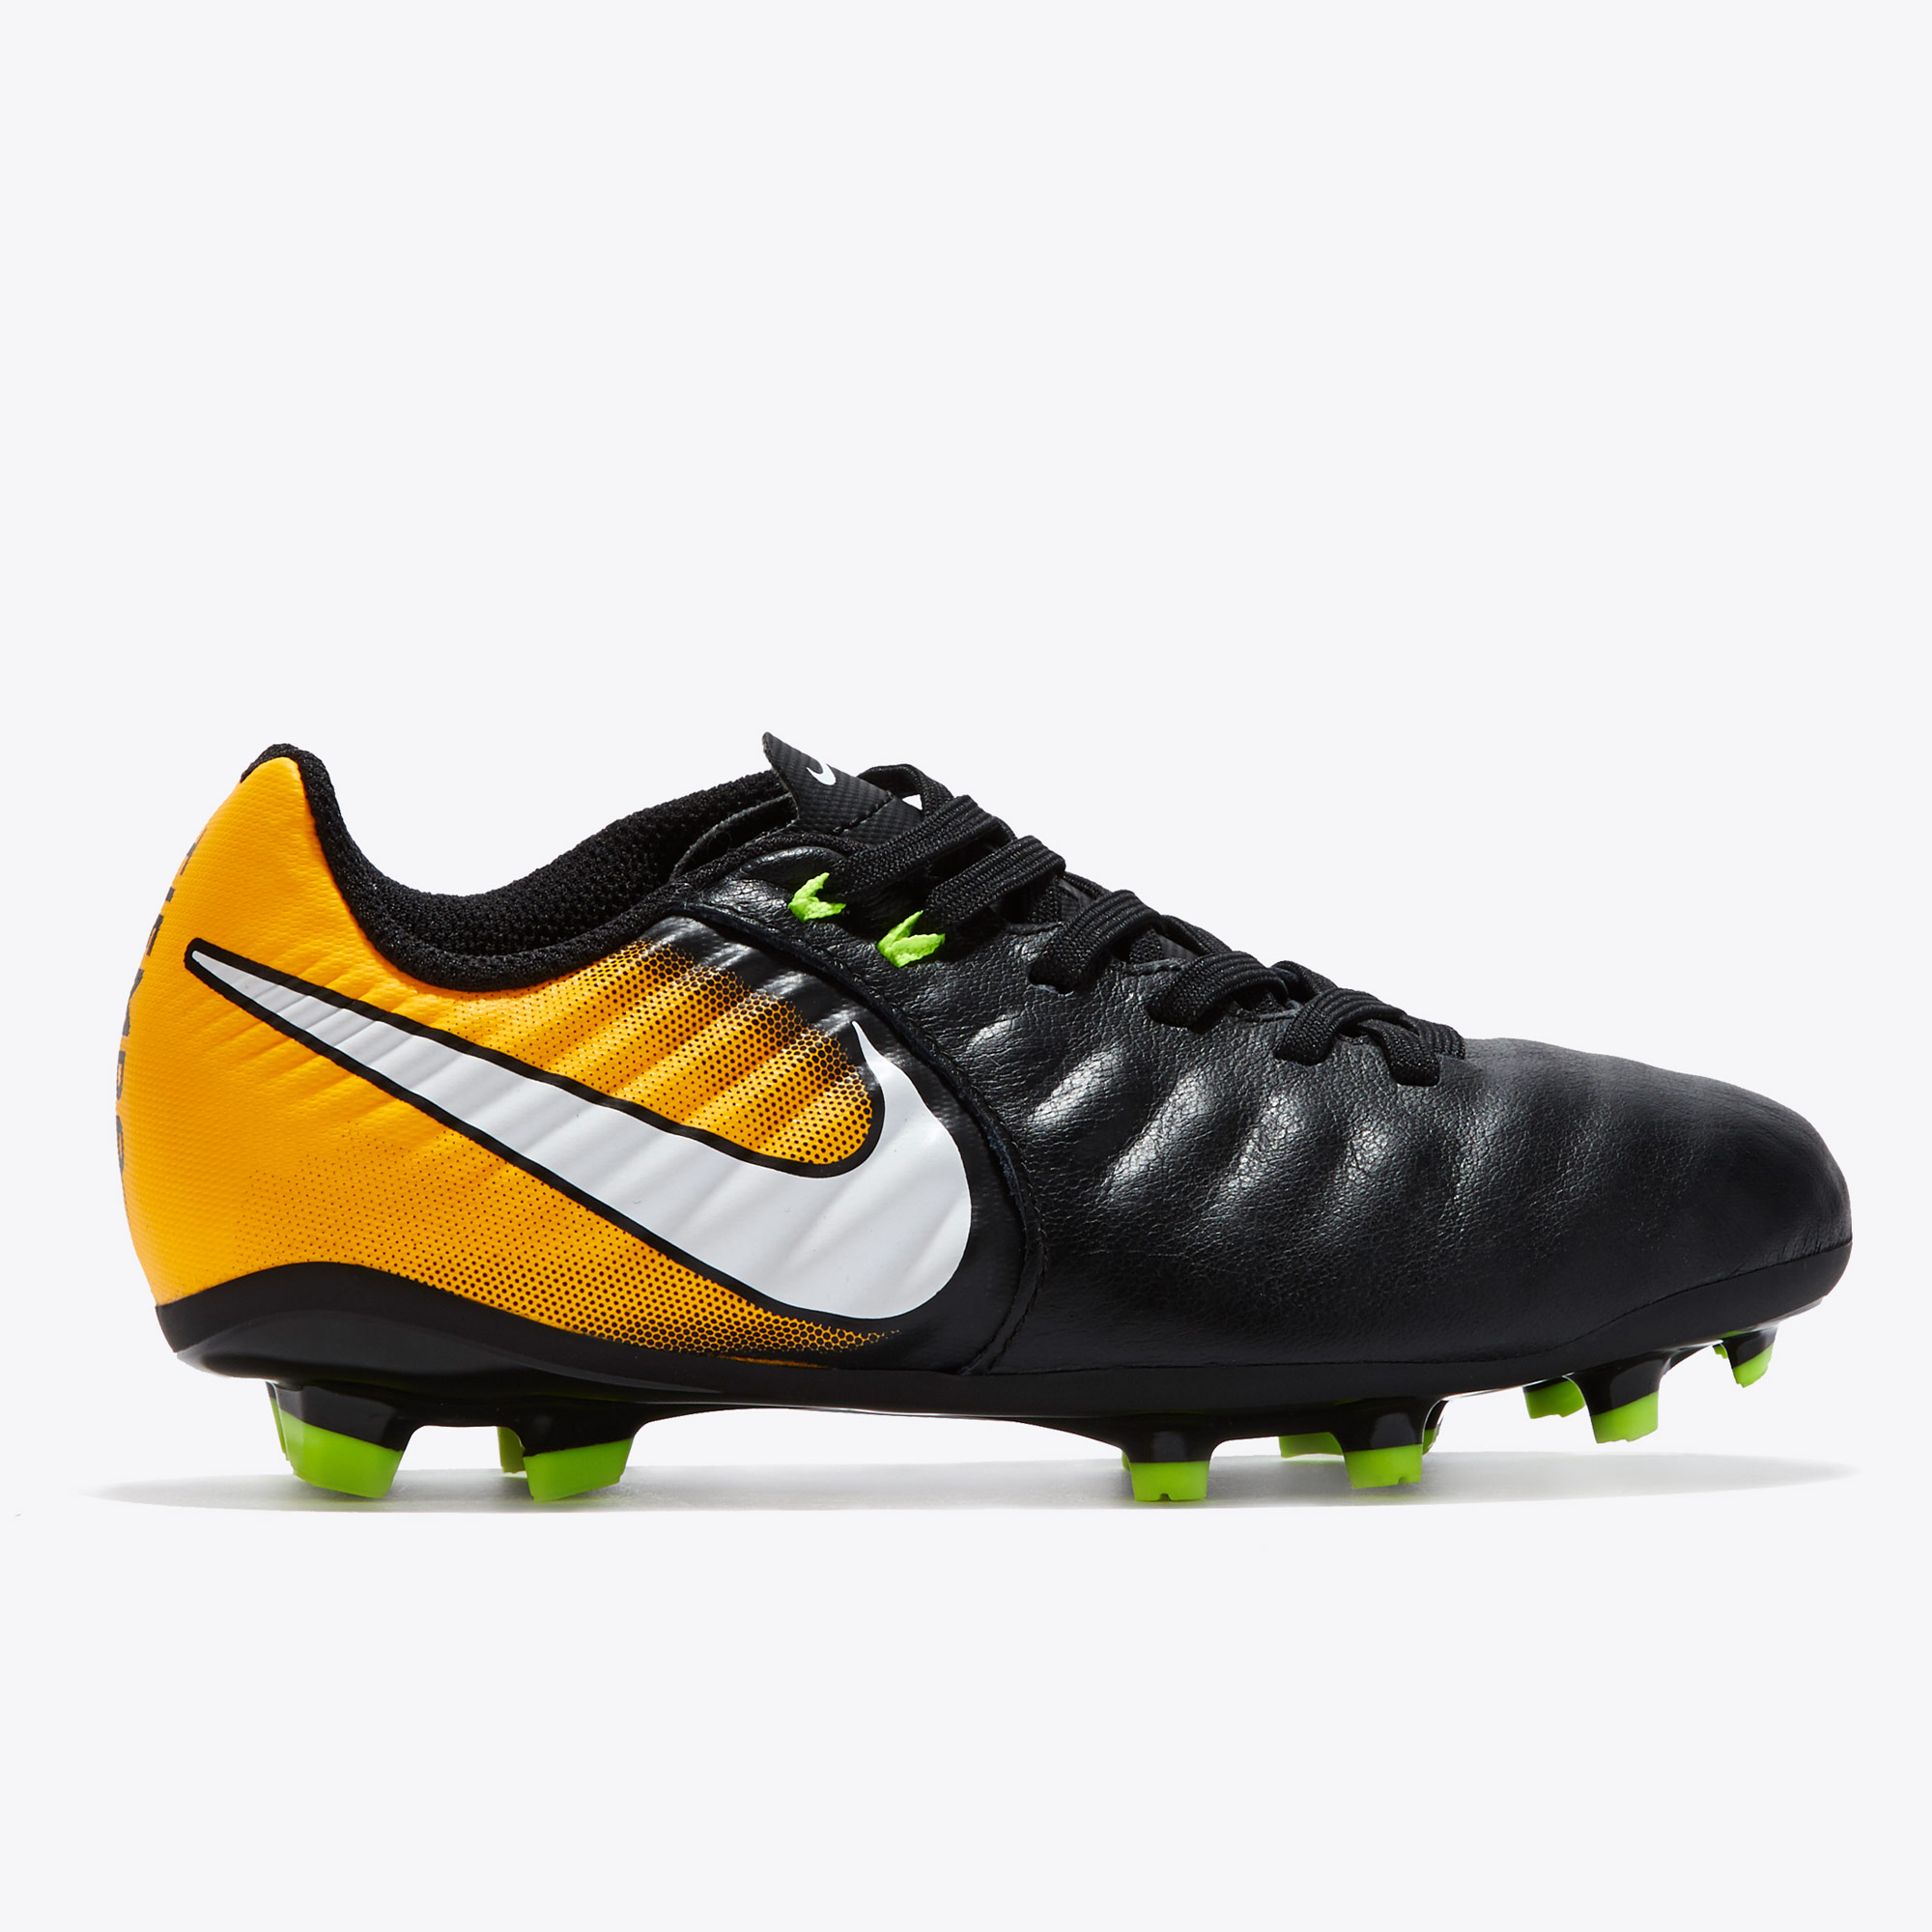 Nike Tiempo Ligera IV Firm Ground Football Boots - Black/White/Laser O